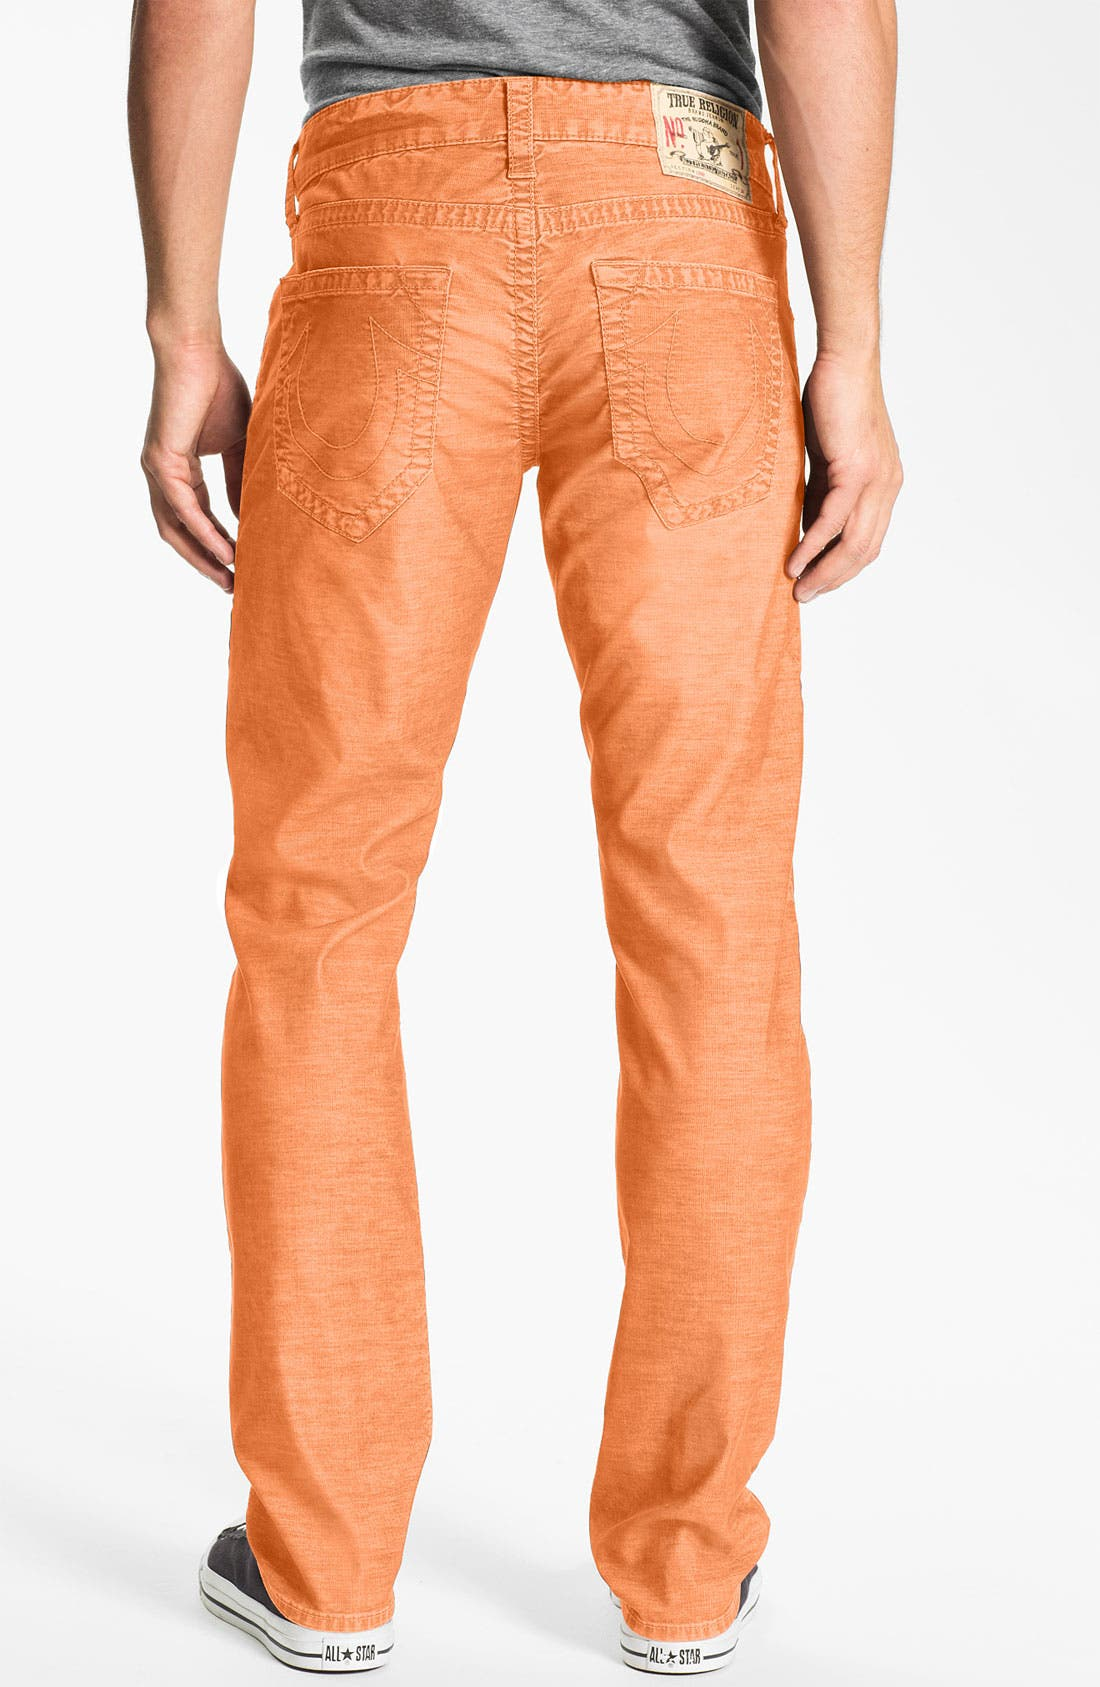 Alternate Image 1 Selected - True Religion Brand Jeans 'Geno' Slim Corduroy Pants (Online Only)